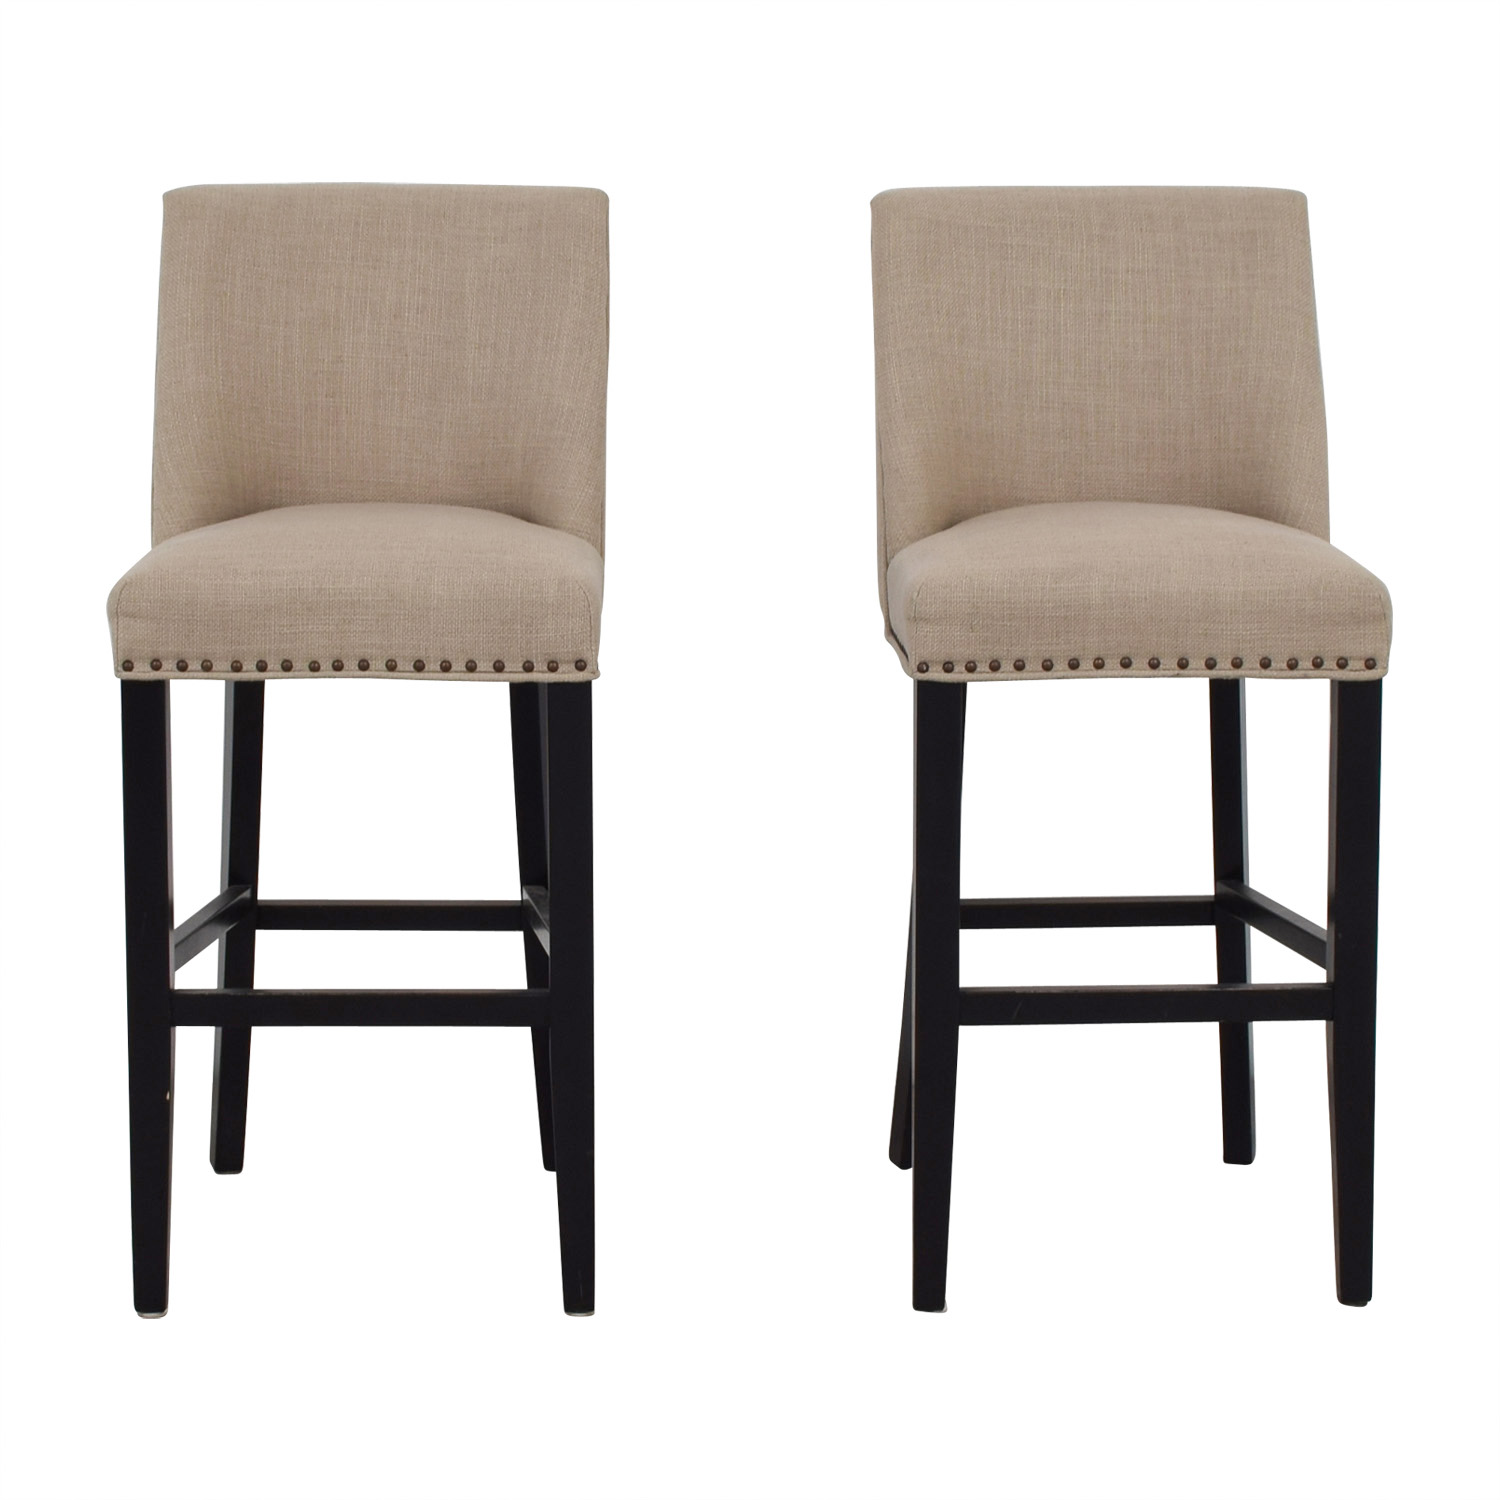 Pier 1 Imports Grey Linen Stools / Chairs